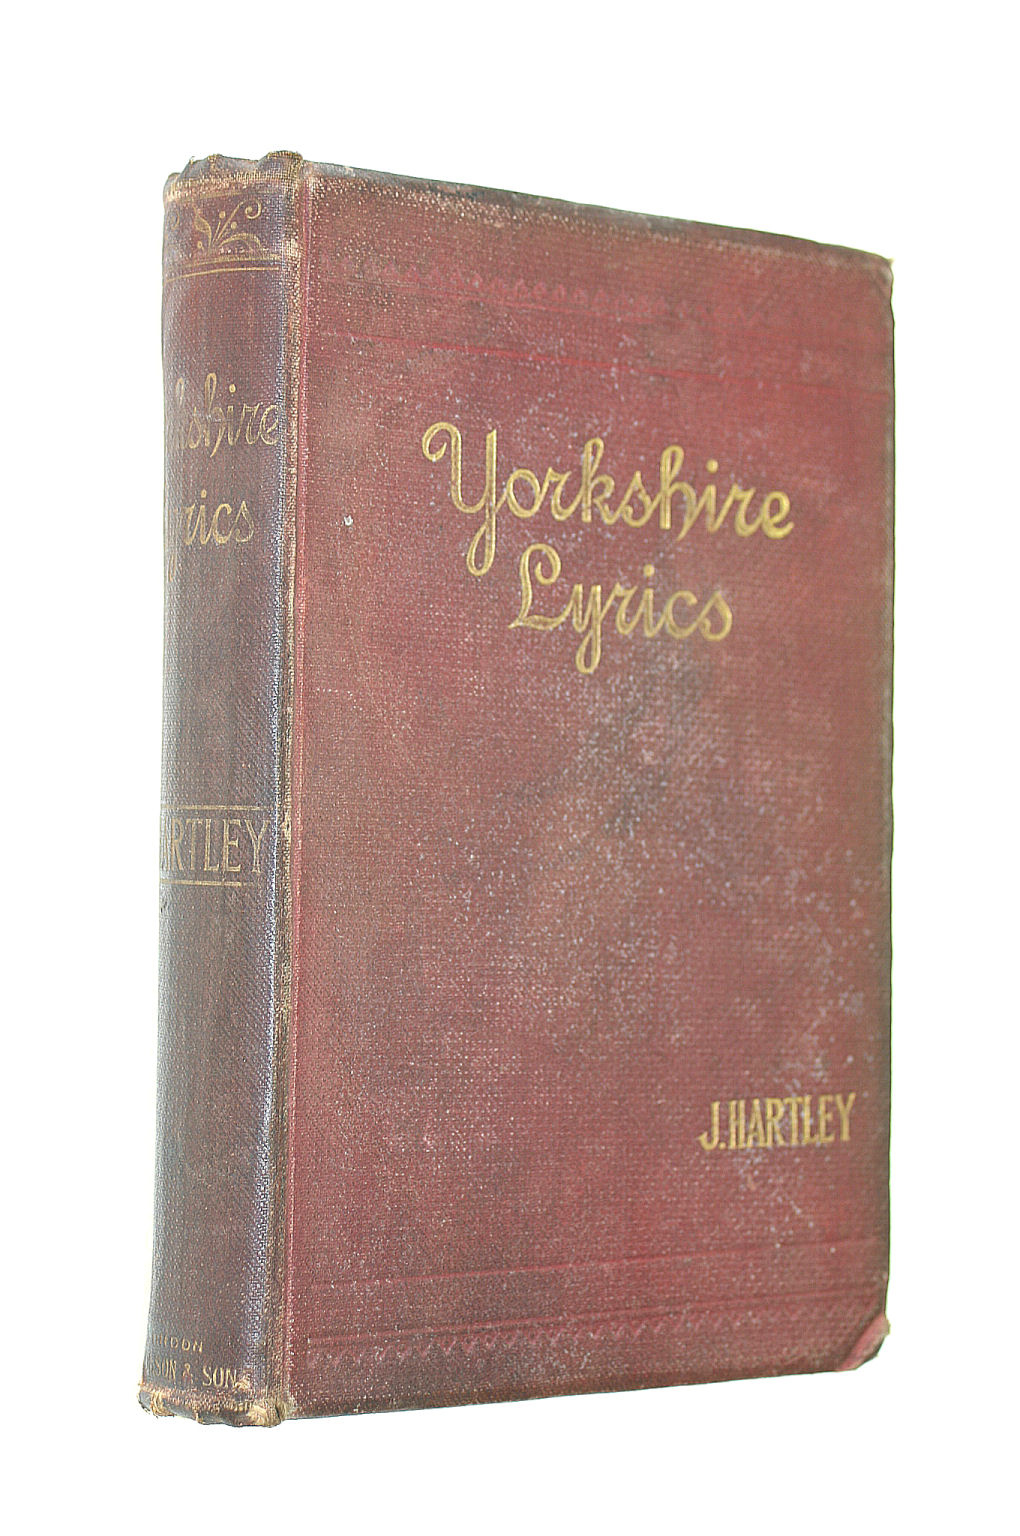 Image for Yorkshire Lyrics: Poems Written In The Dialect As Spoken In The West Riding Of Yorkshire To Which Are Added A Selective Of Fugitive Verses Not In Dialect